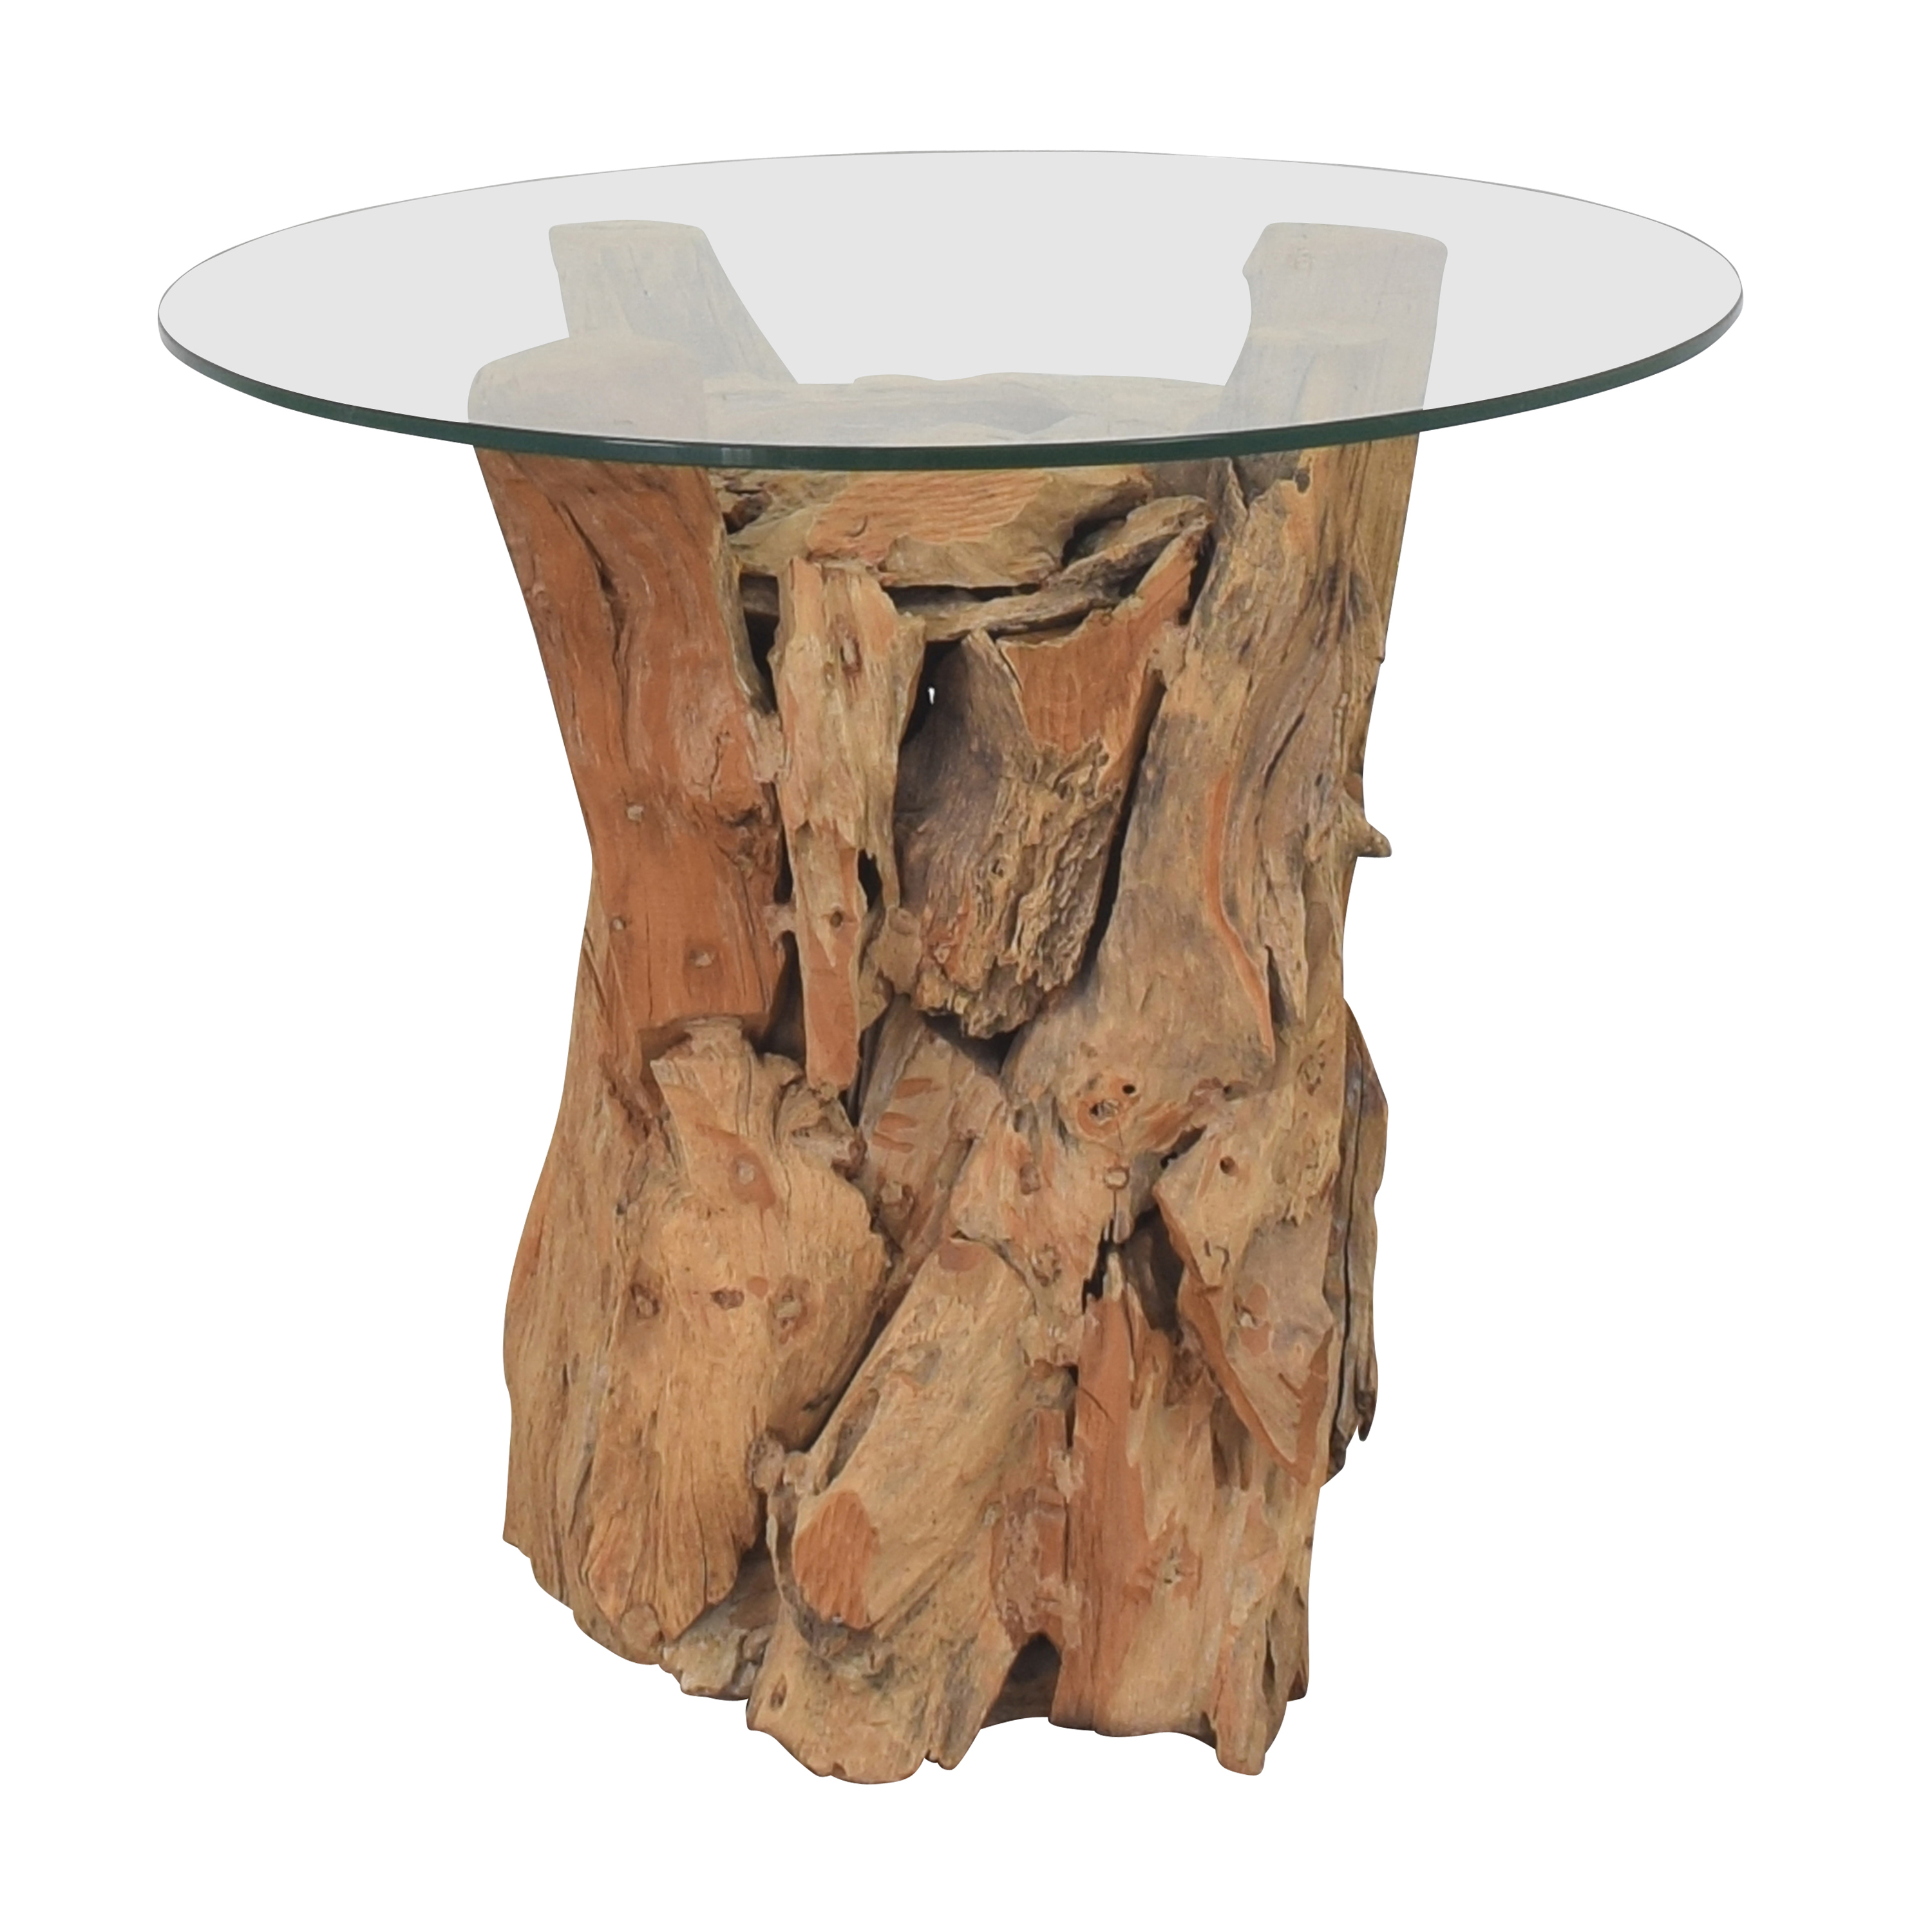 CB2 CB2 Driftwood-Style End Table Tables